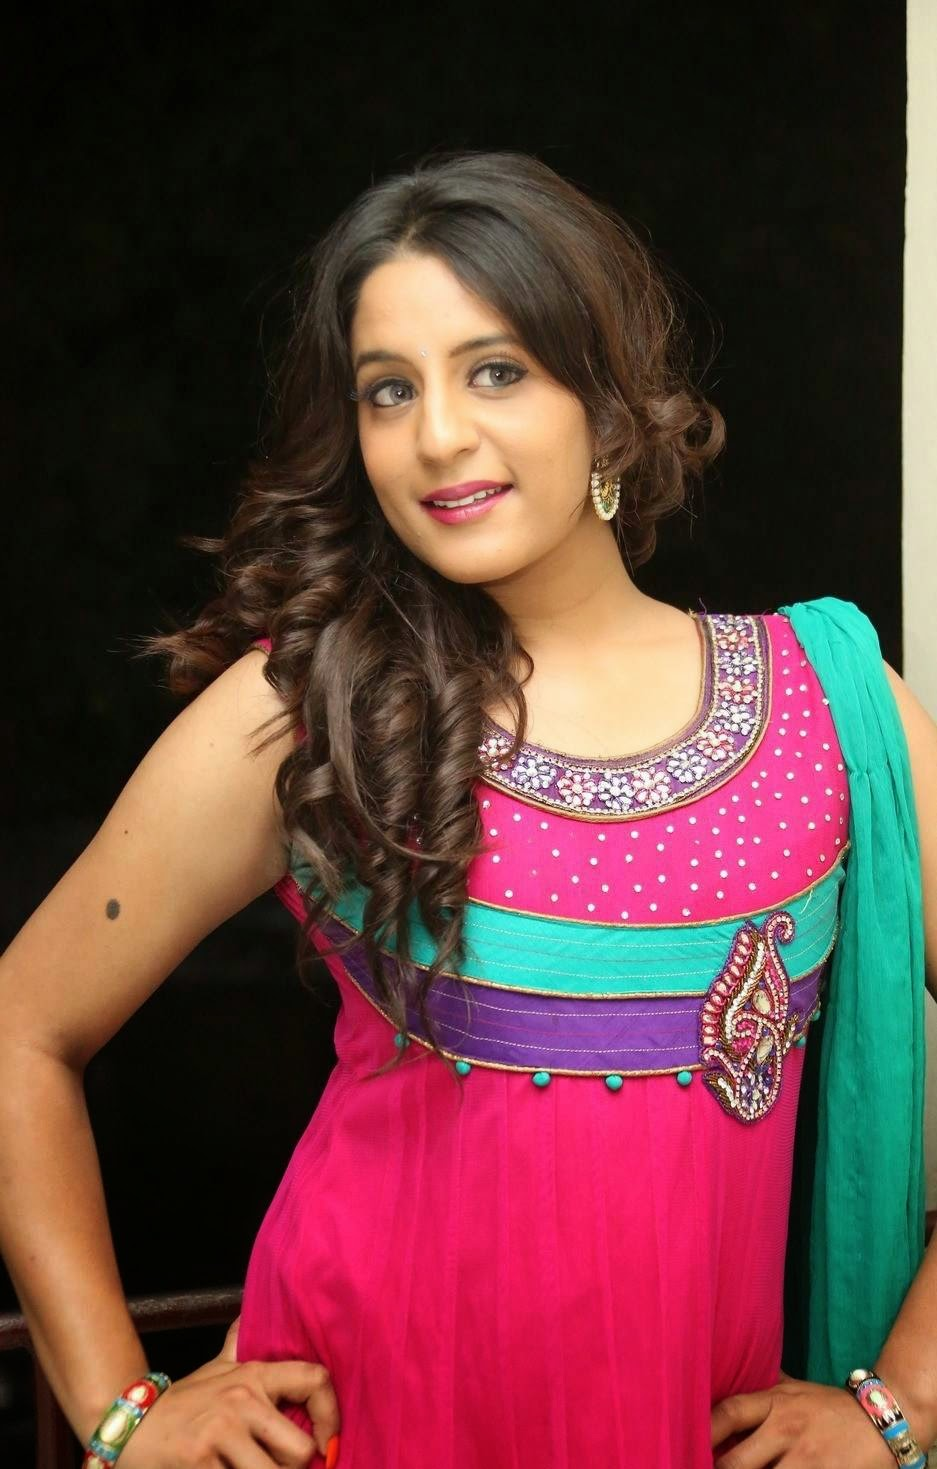 sonia sharma cute hd images by indian girls whatsapp numbers